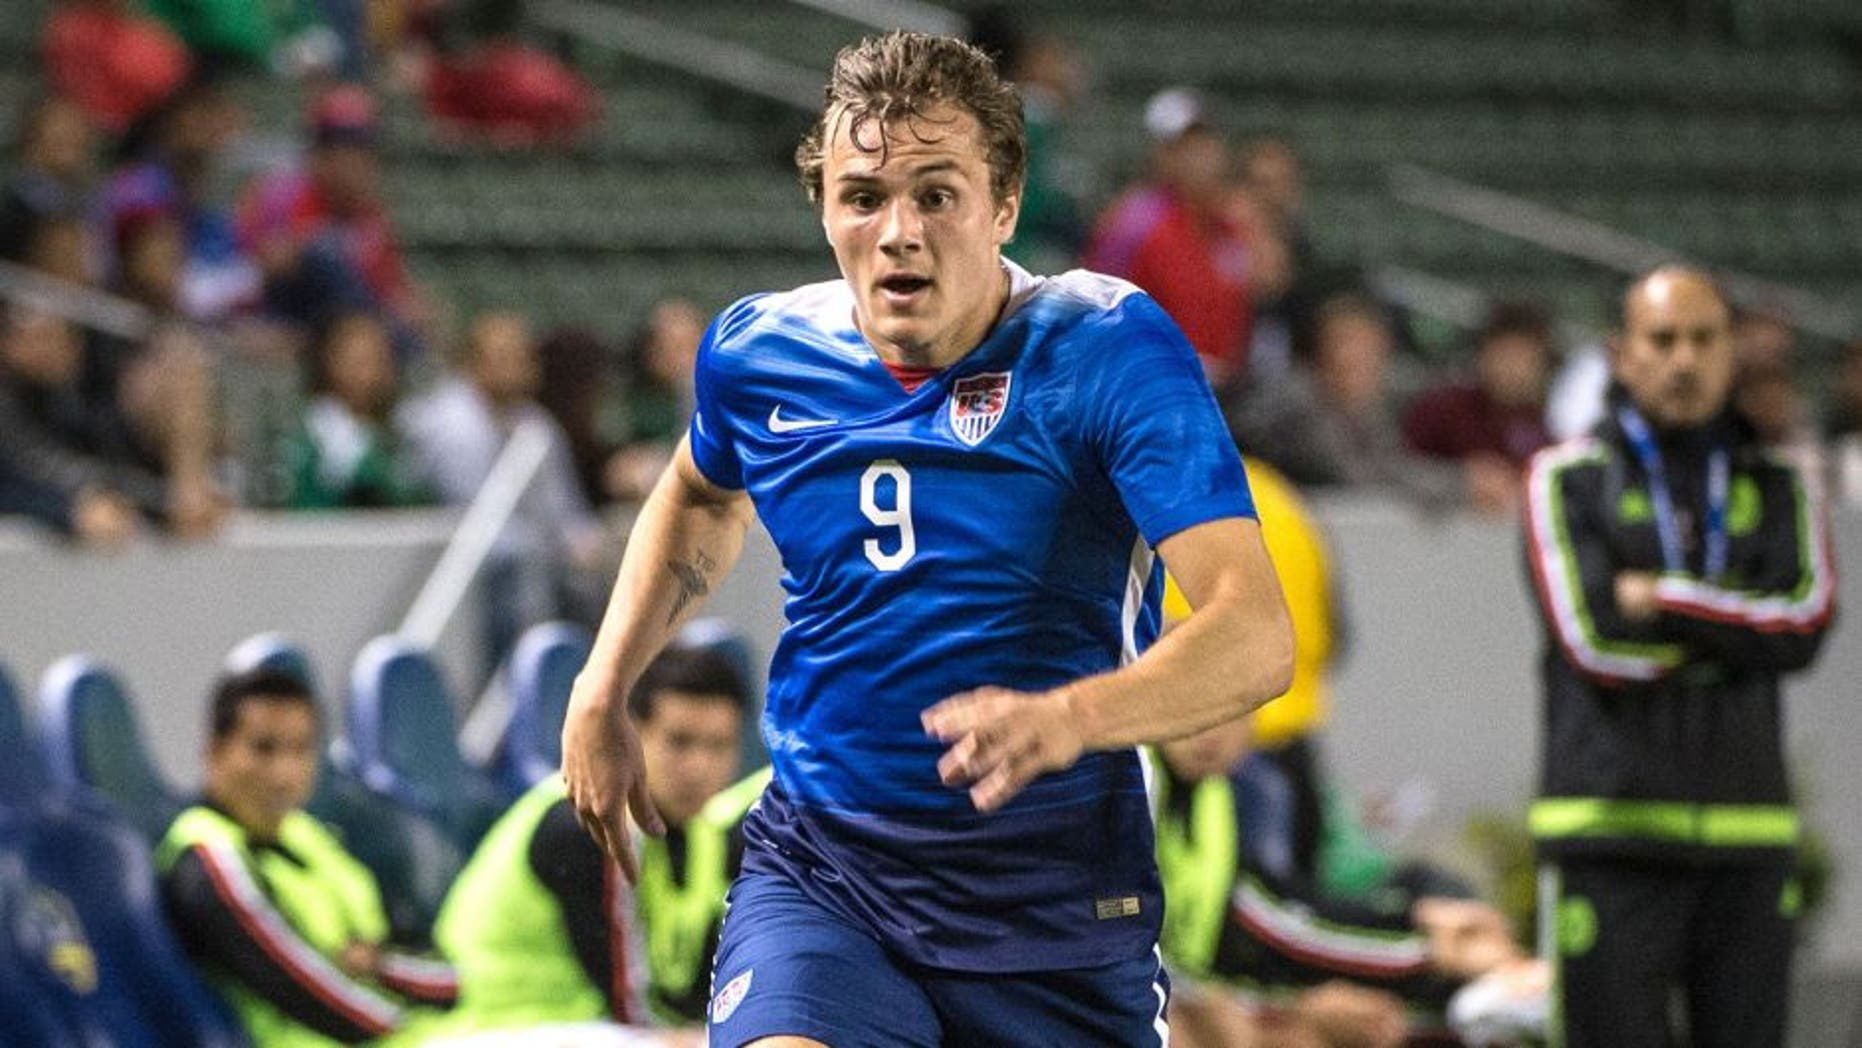 CARSON, CA - APRIL 22: Jordan Morris #9 of USMNT U23 races down the wing during the International Soccer Friendly match between United States Men's U23 and the Mexican Men's U23 at the Stubhub Center on April 22, 2015 in Carson, California. The United States won the match 3-0. (Photo by Shaun Clark/Getty Images)